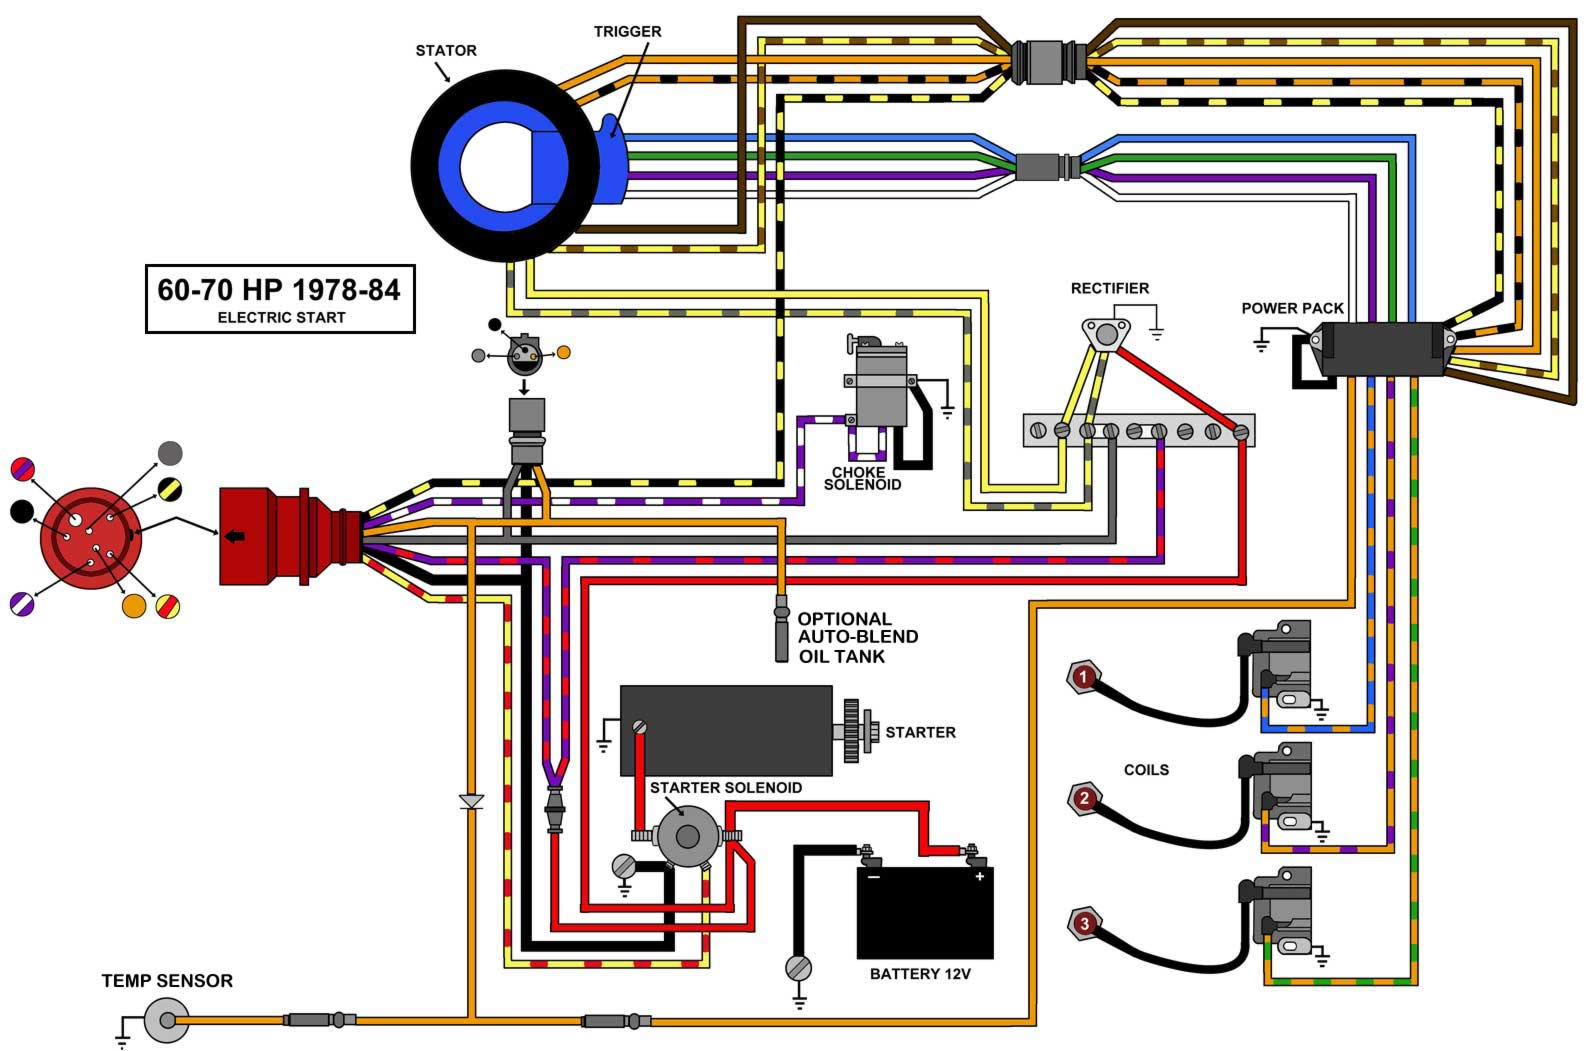 78 84_3 CYL_EL wiring tach from johnson controls page 1 iboats boating forums evinrude tilt trim wiring diagram at readyjetset.co